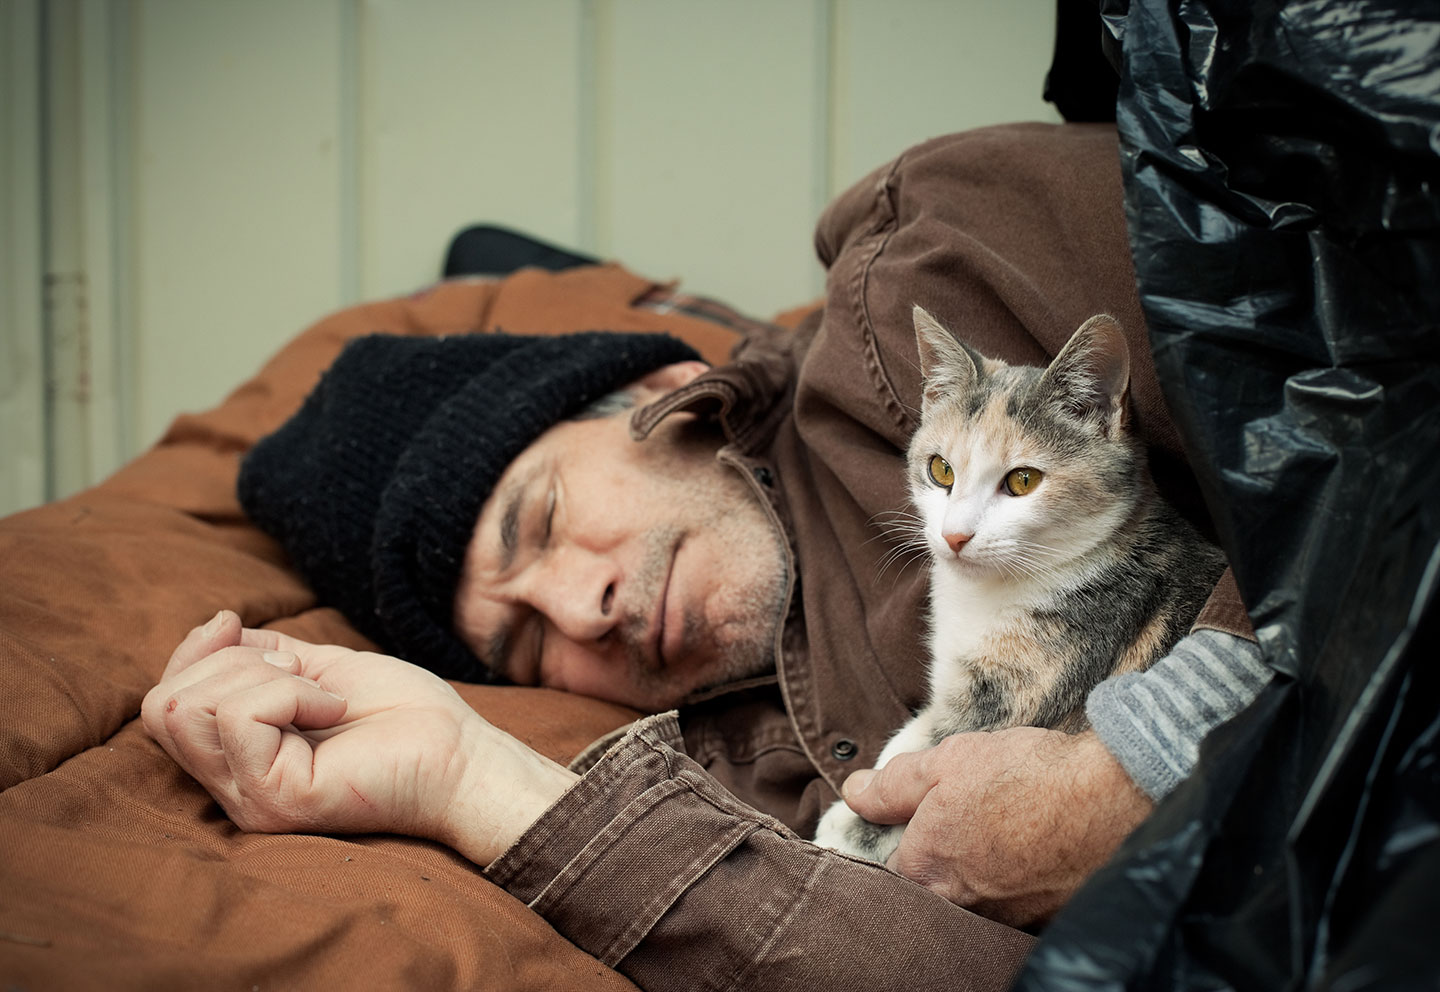 homeless person with cat